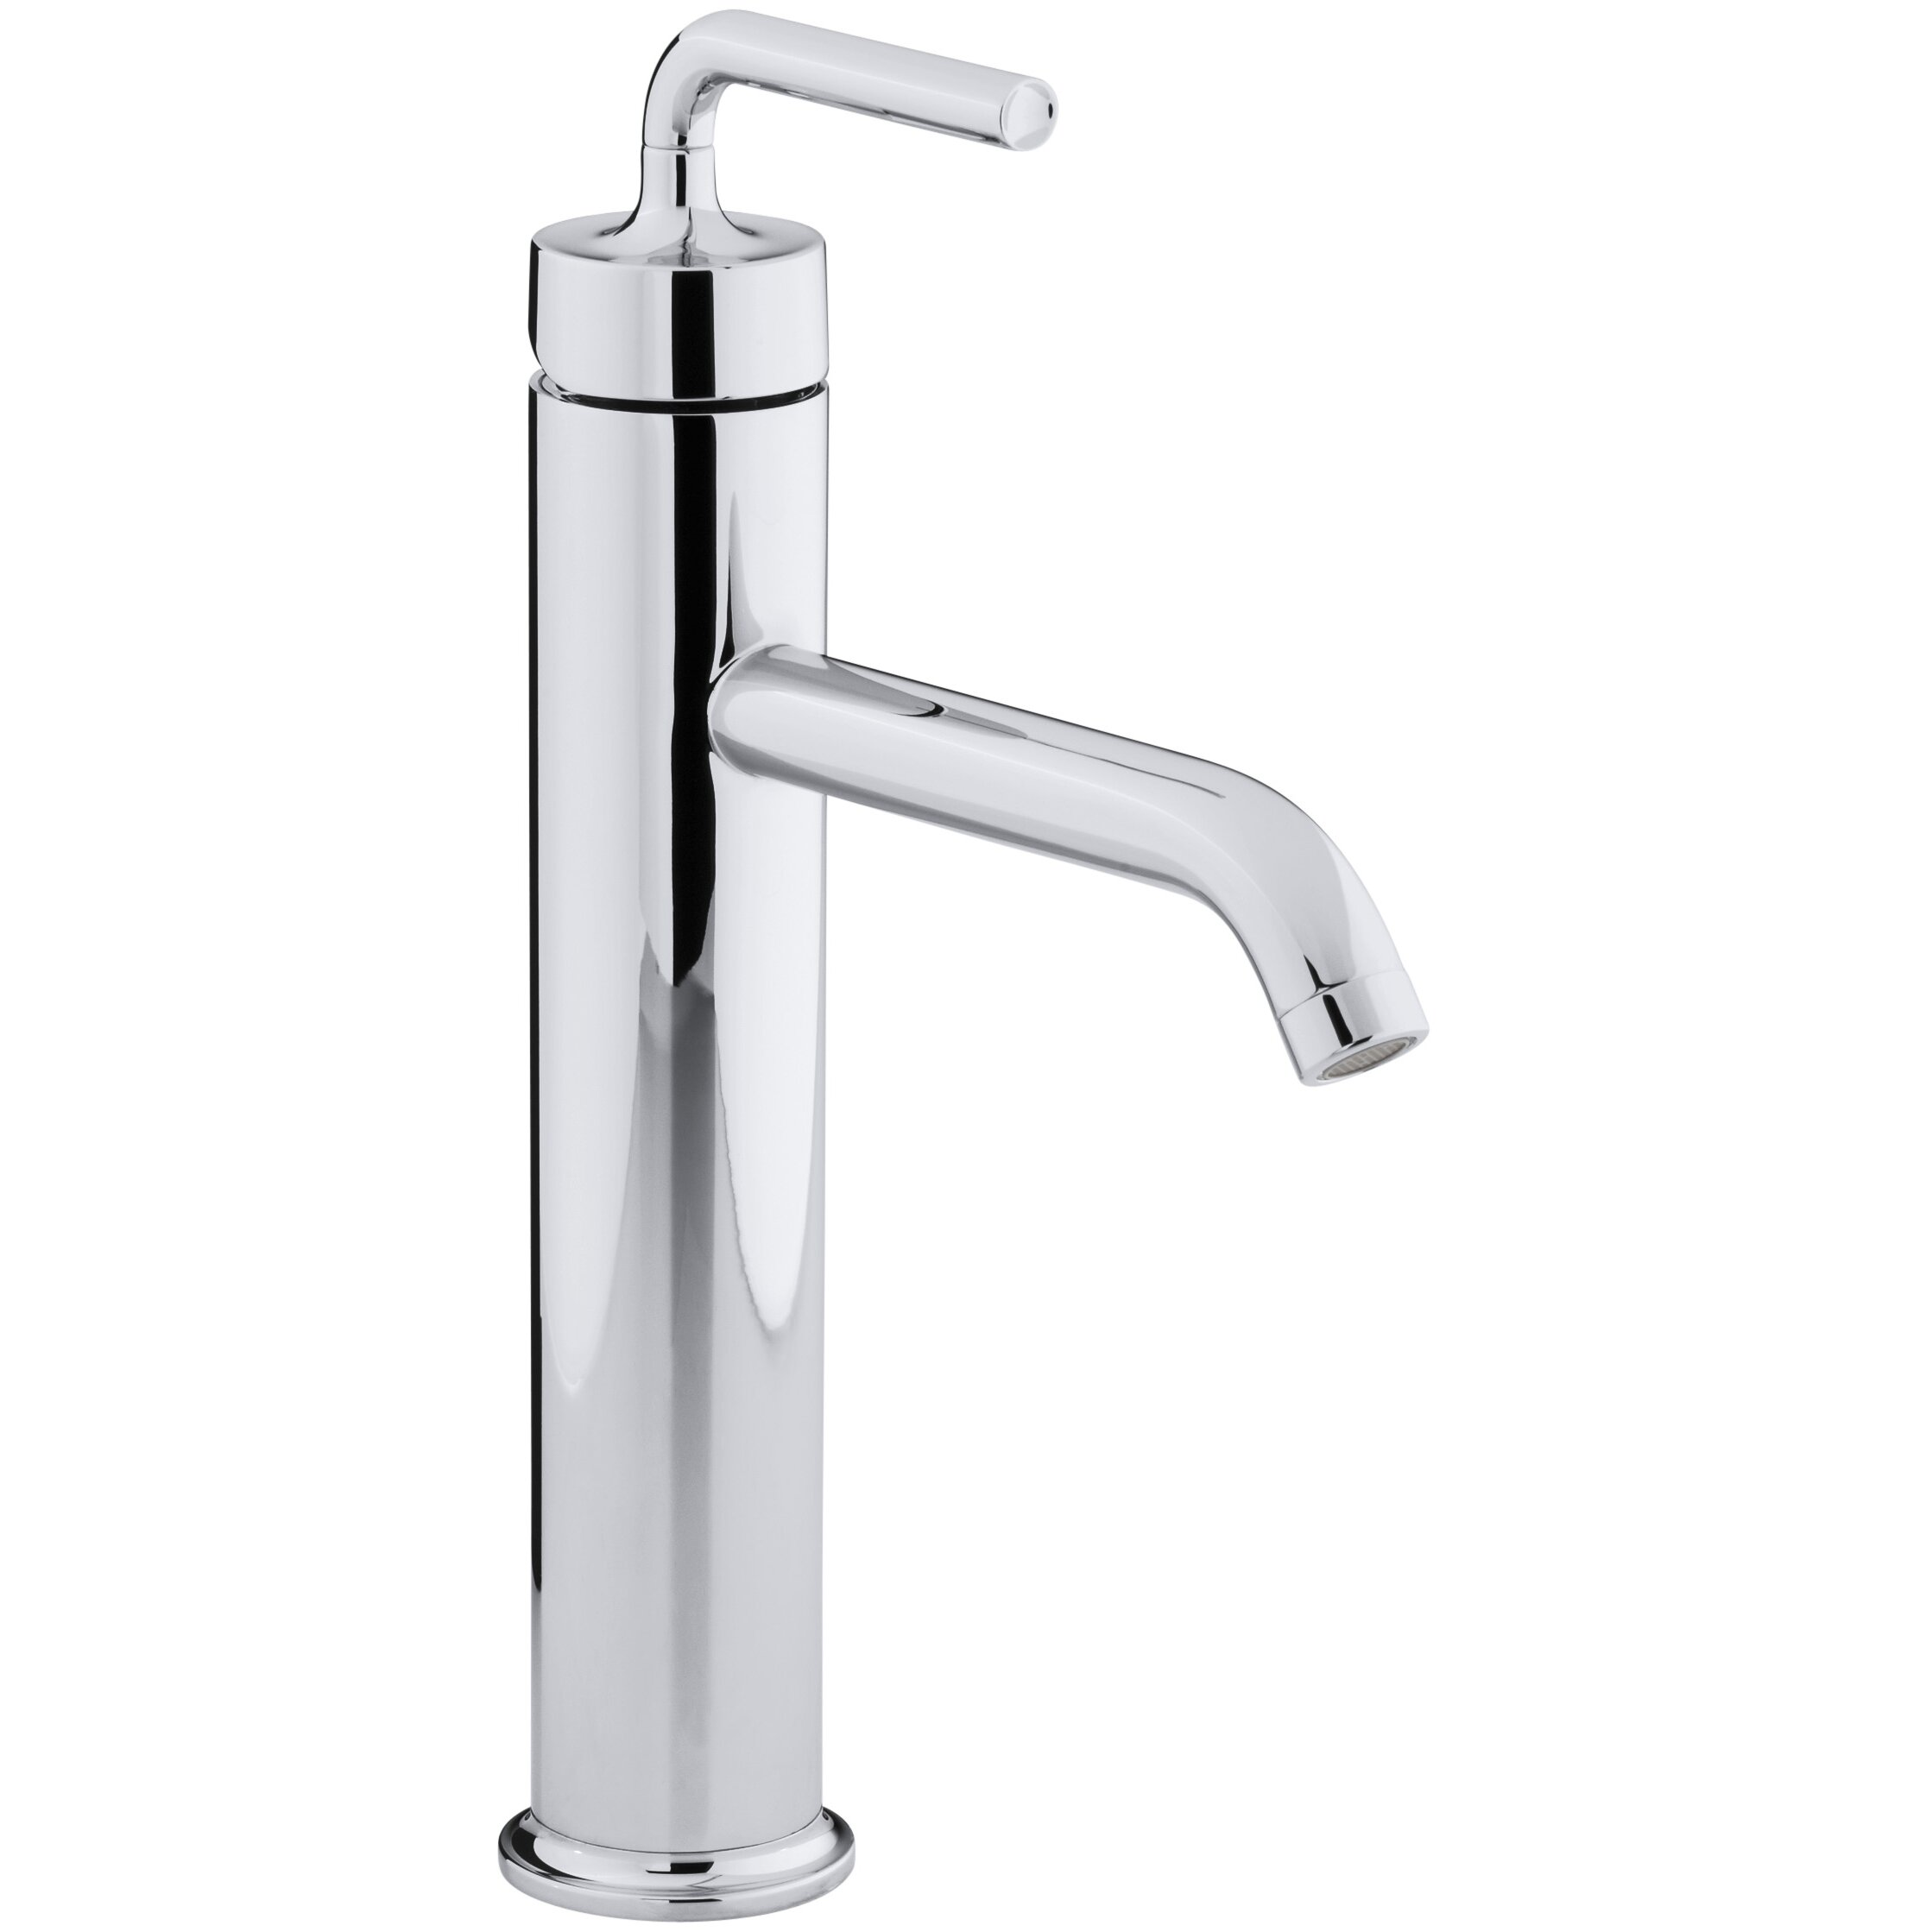 Kohler Purist Tall Single Hole Bathroom Sink Faucet With Straight Lever Handle Reviews